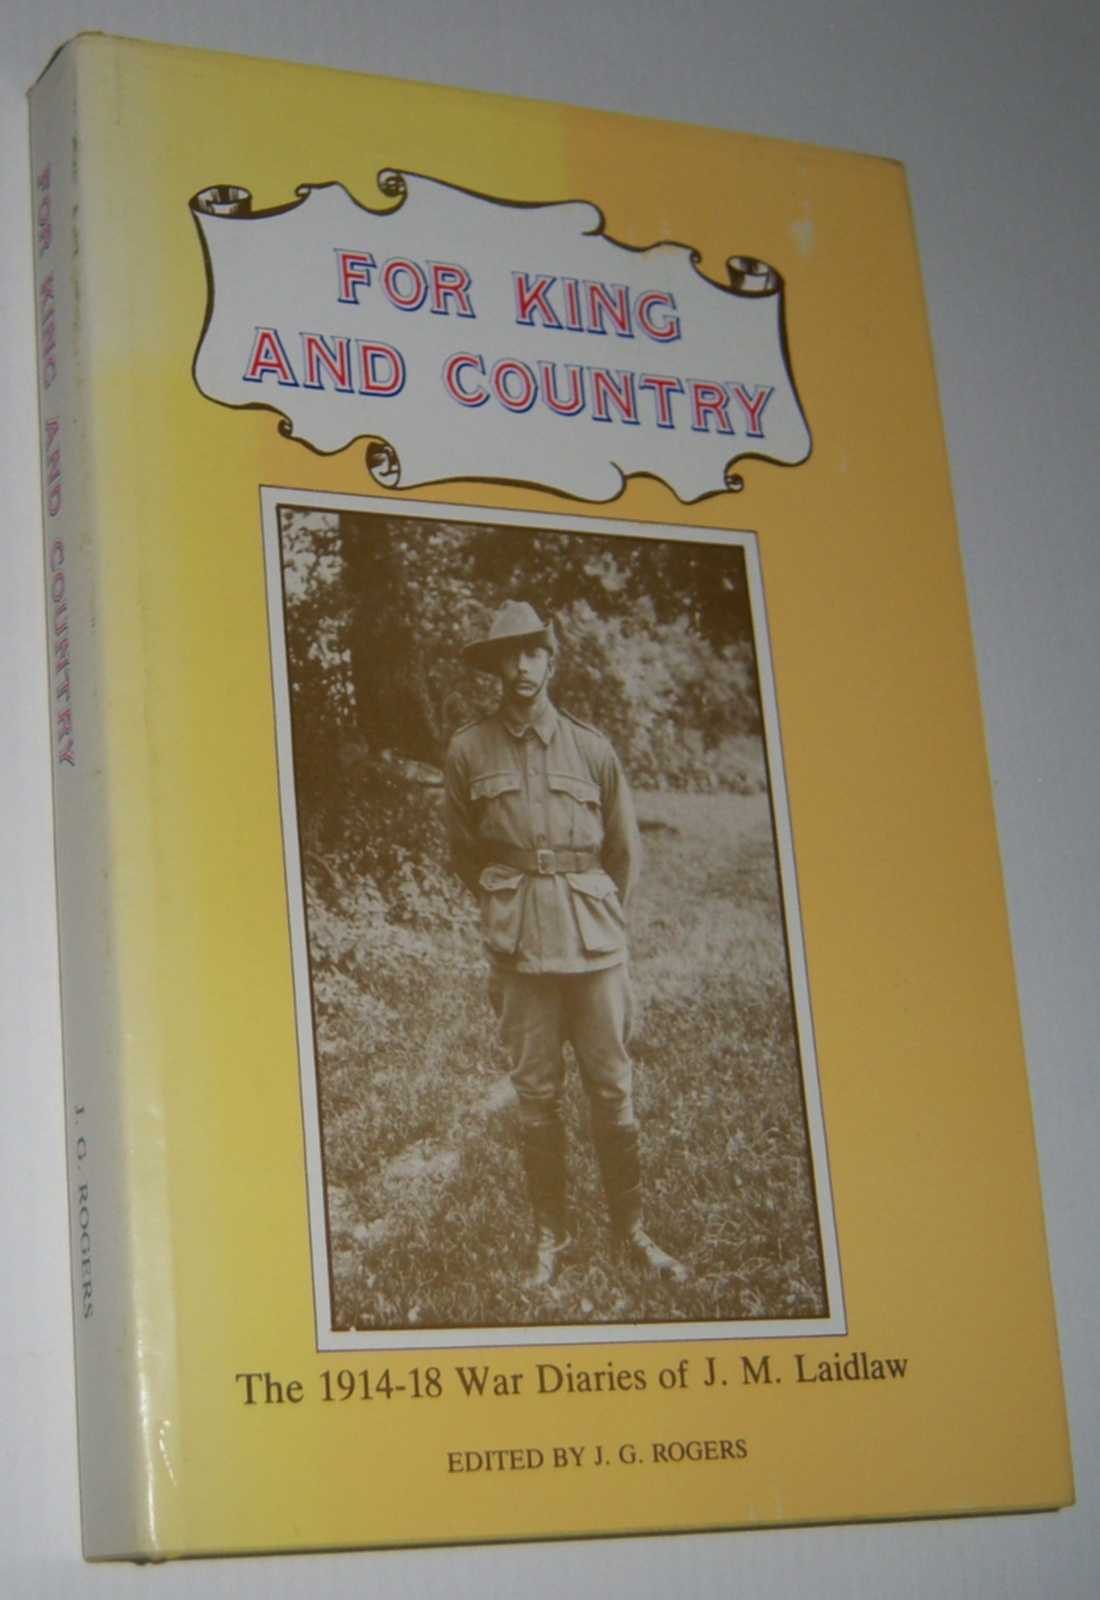 Image for FOR KING AND COUNTRY: The 1914-1918 War Diaries of J.M. Laidlaw  (Limited Edition)